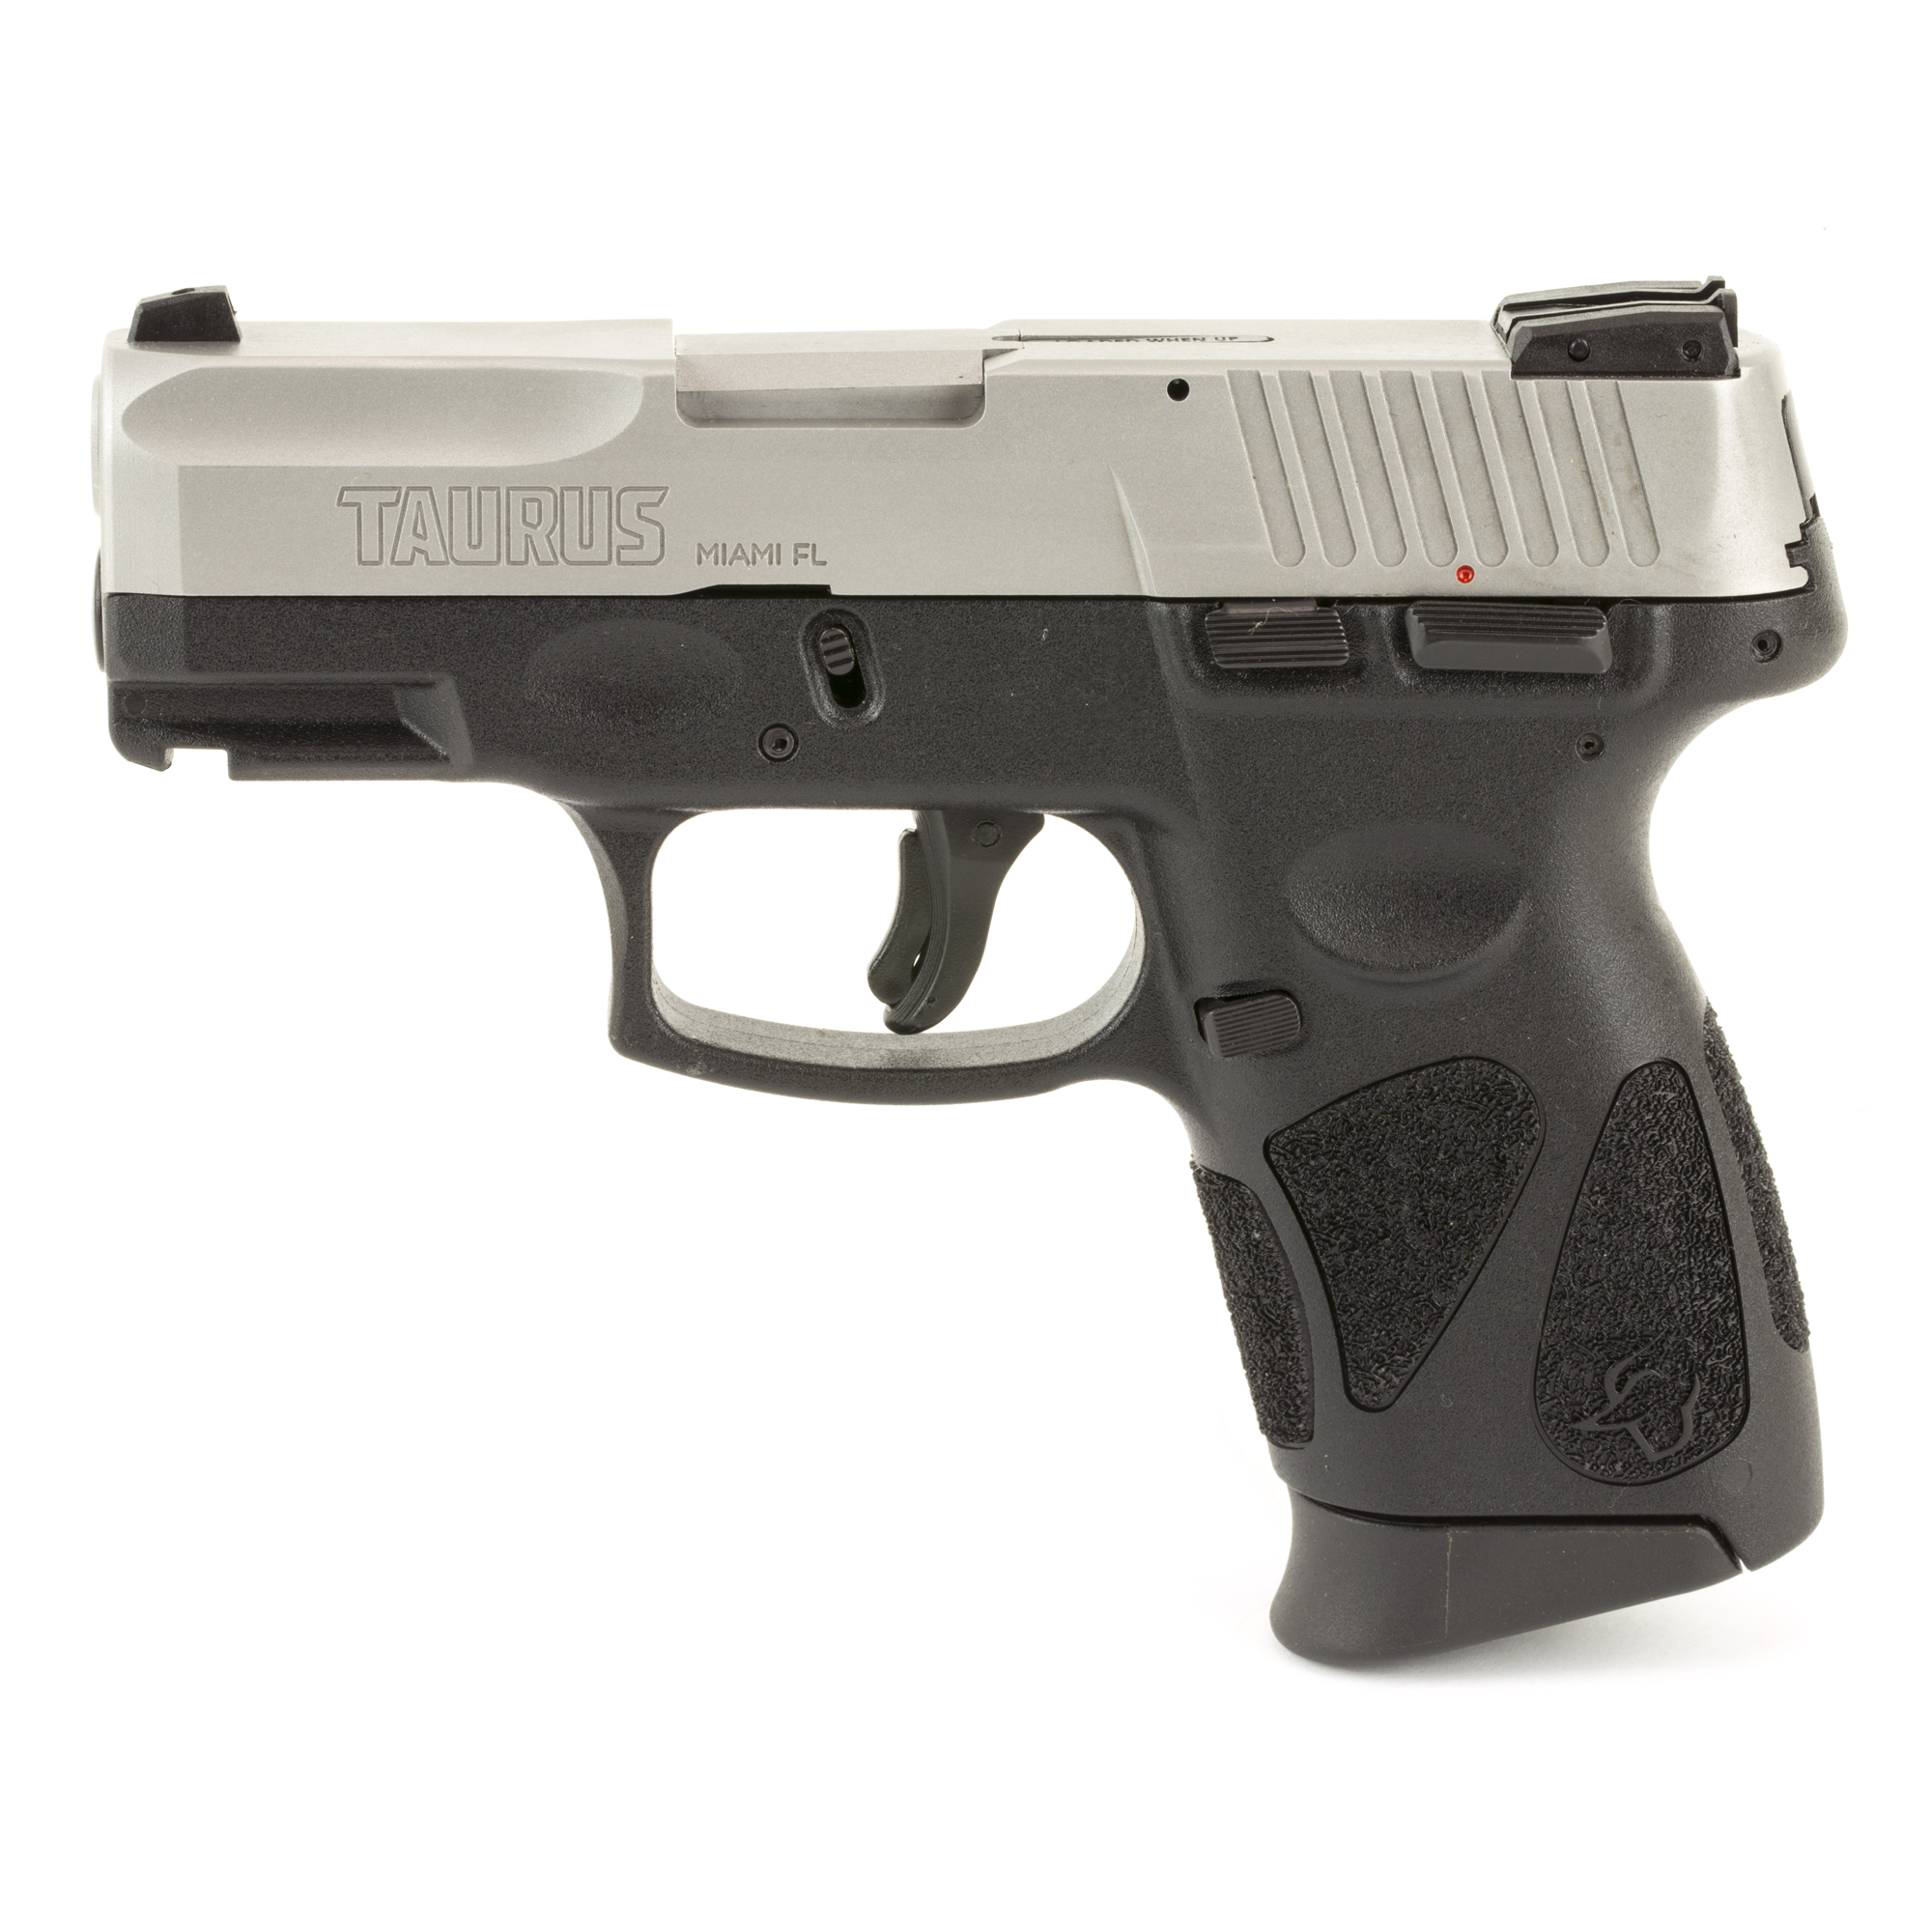 """Taurus USA sets the new standard for concealed carry handguns with the introduction of the new Taurus(R) G2C series semi-automatic pistols. These streamlined"""" performance-driven autoloaders strike the ideal balance between comfort and confidence in both self-defense and target shooting conditions."""